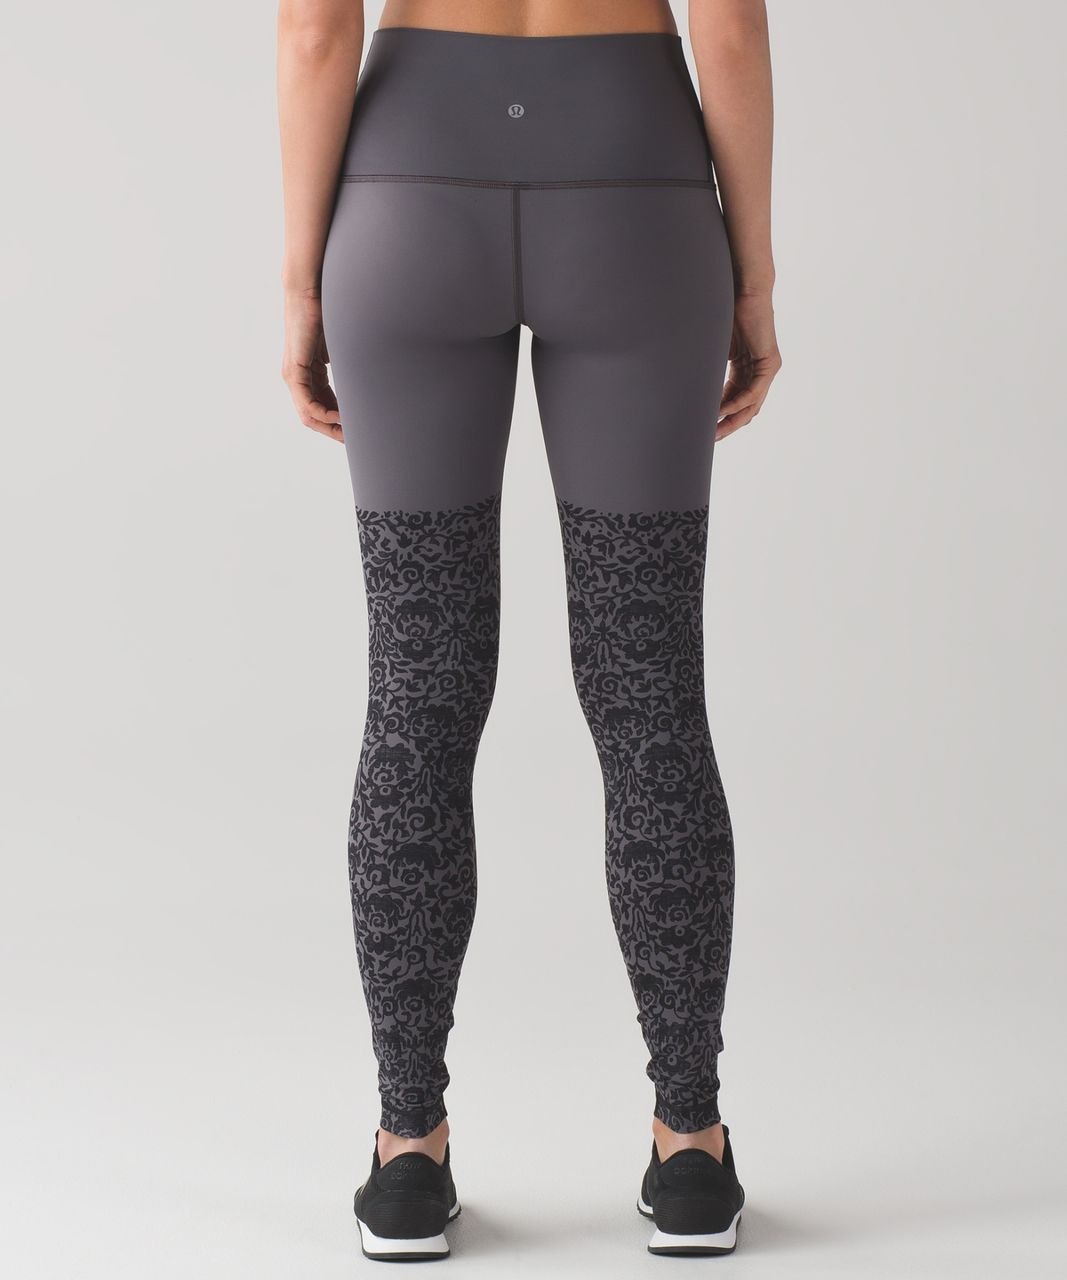 Lululemon Wunder Under Pant (Hi-Rise) (Engineered Print Nulux) - Ooh-la-lace Wunder Under 50g Dark Carbon Black / Dark Carbon